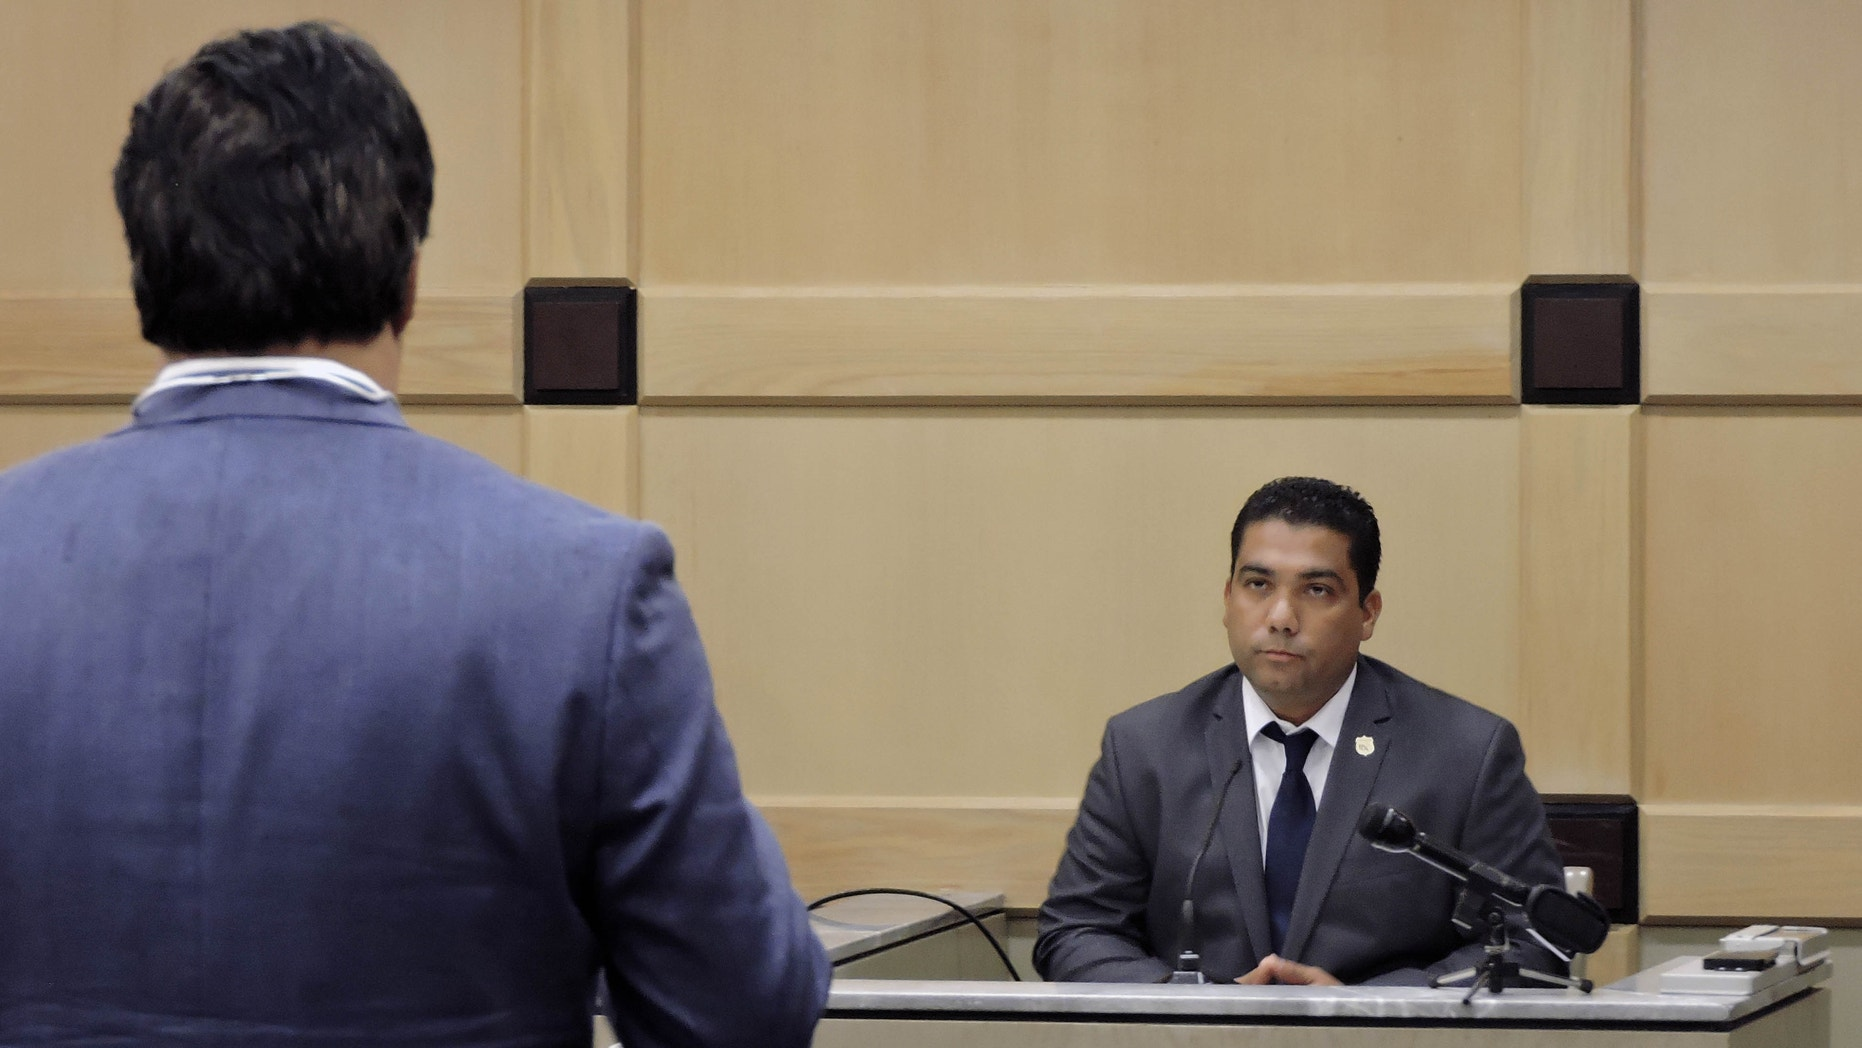 Peraza begins answering questions from his attorney on June 16, 2016 in Fort Lauderdale,